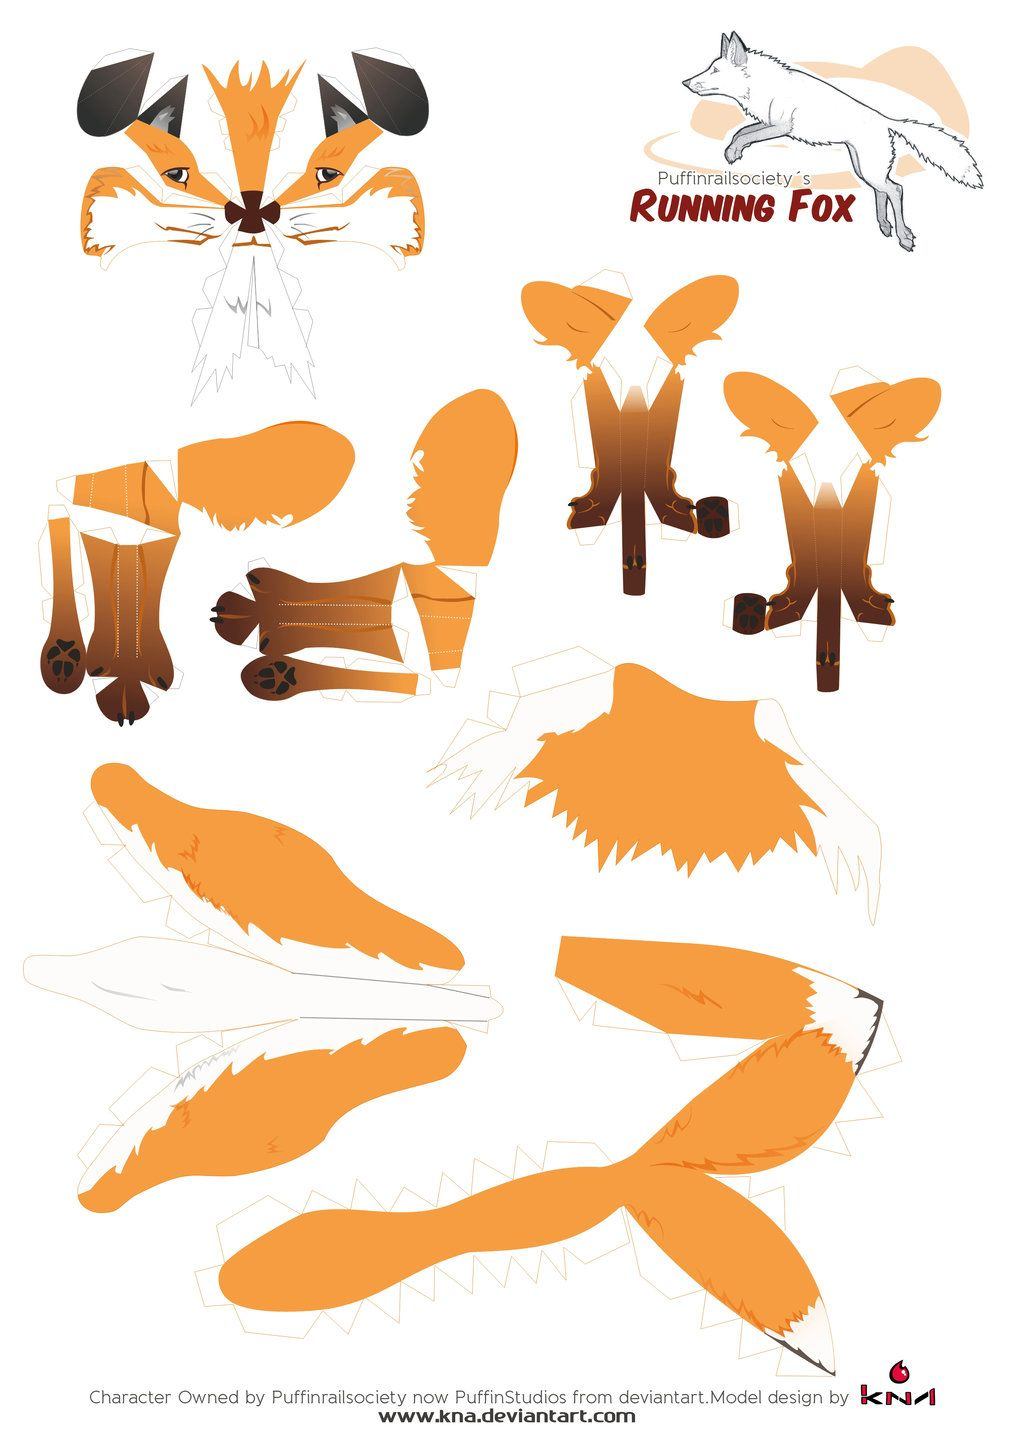 Quick brown fox papercraft pattern by knaiantart on quick brown fox papercraft pattern by knaiantart on deviantart jeuxipadfo Image collections